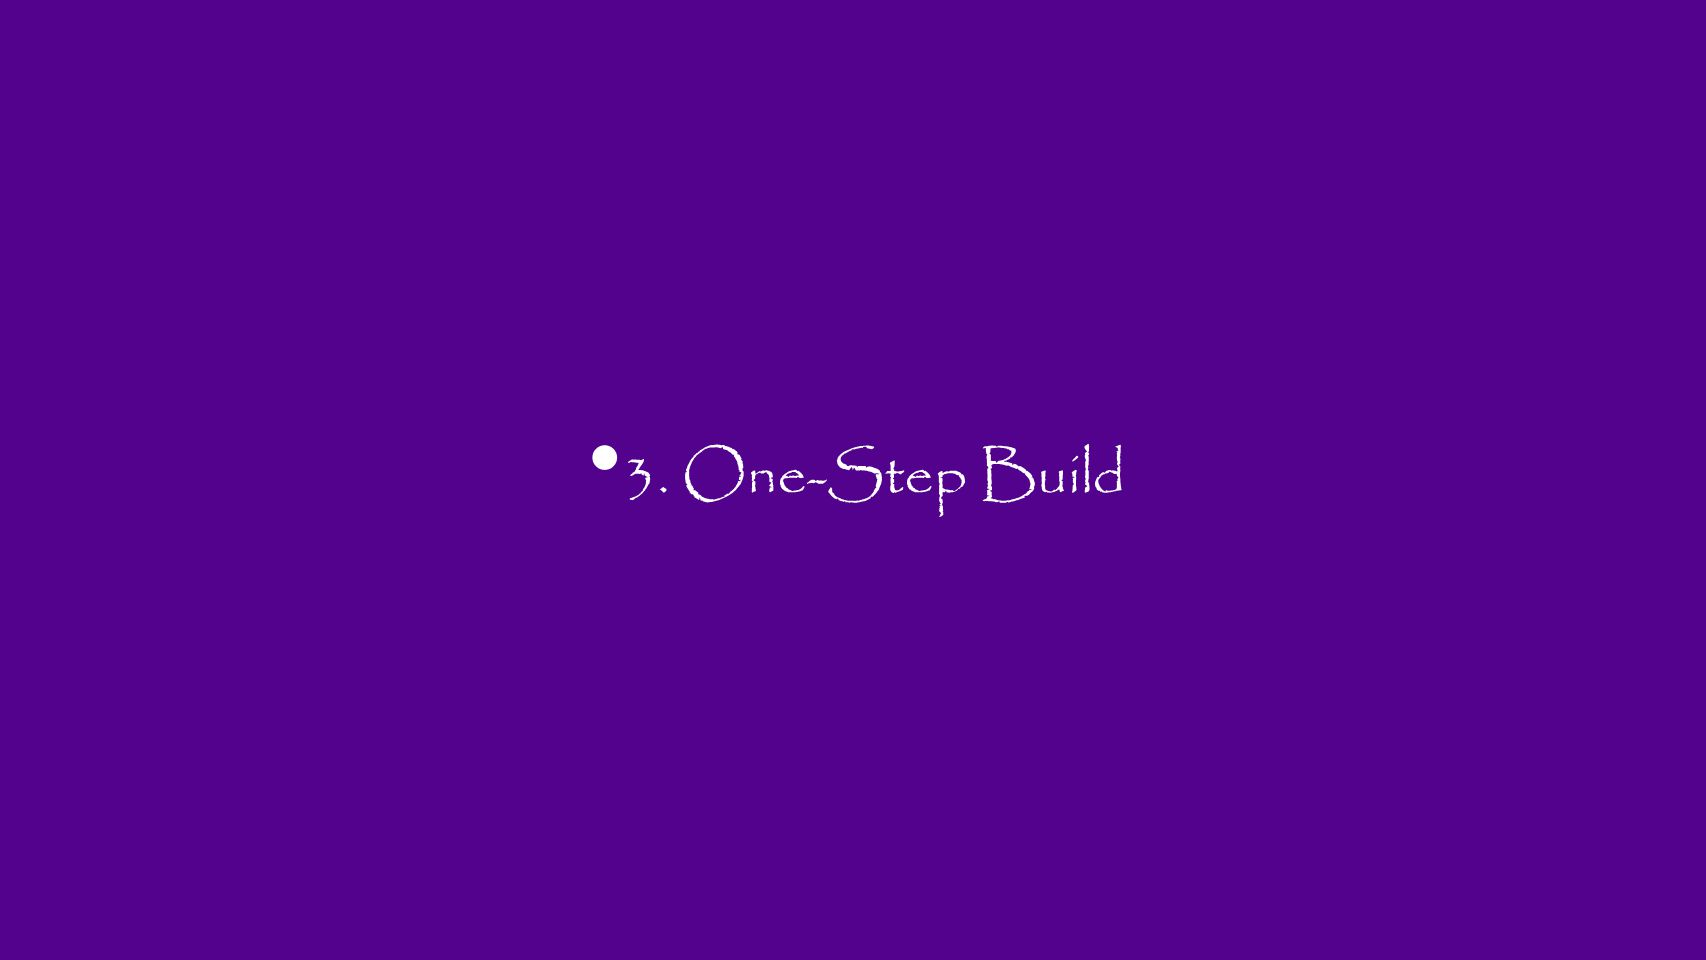 3. One-Step Build